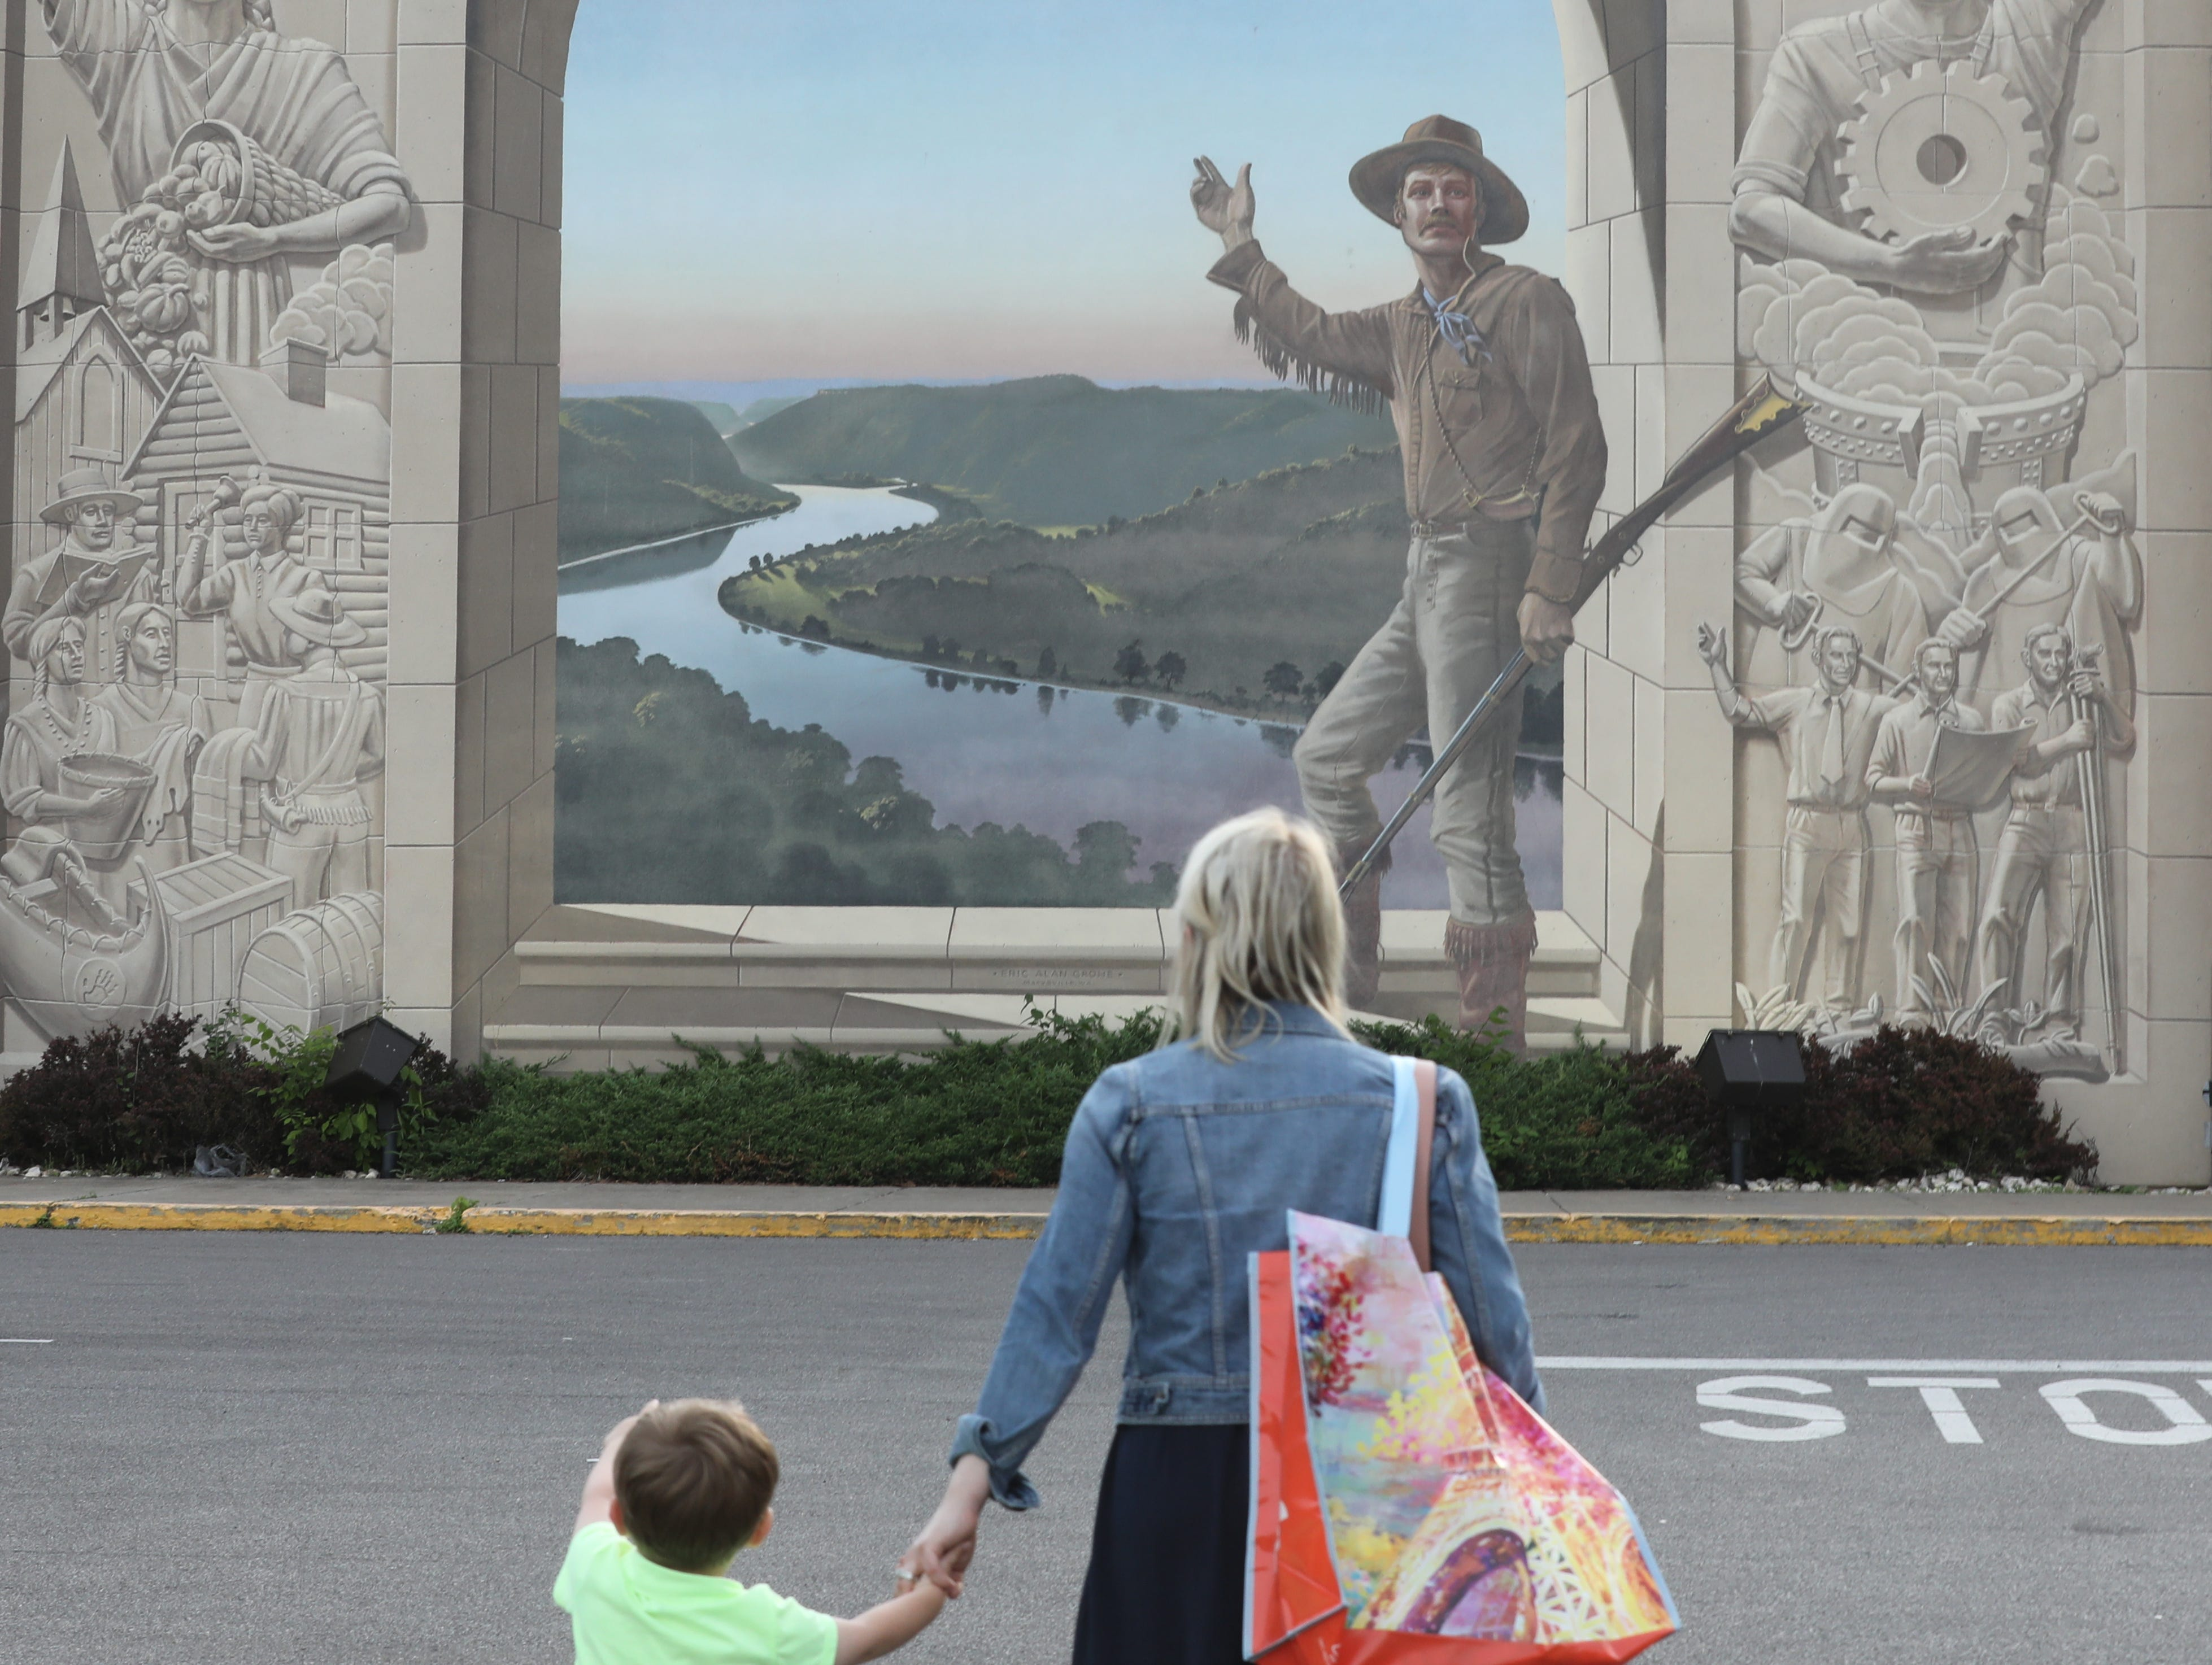 One of the many murals in Steubenville, Ohio. This is Pioneer Days showing the Gateway Arch out west on the Ohio River. It also is a dedication to steel and other Ohio River Valley industries. The mural is in an outdoor shopping mall next door to a restaurant.